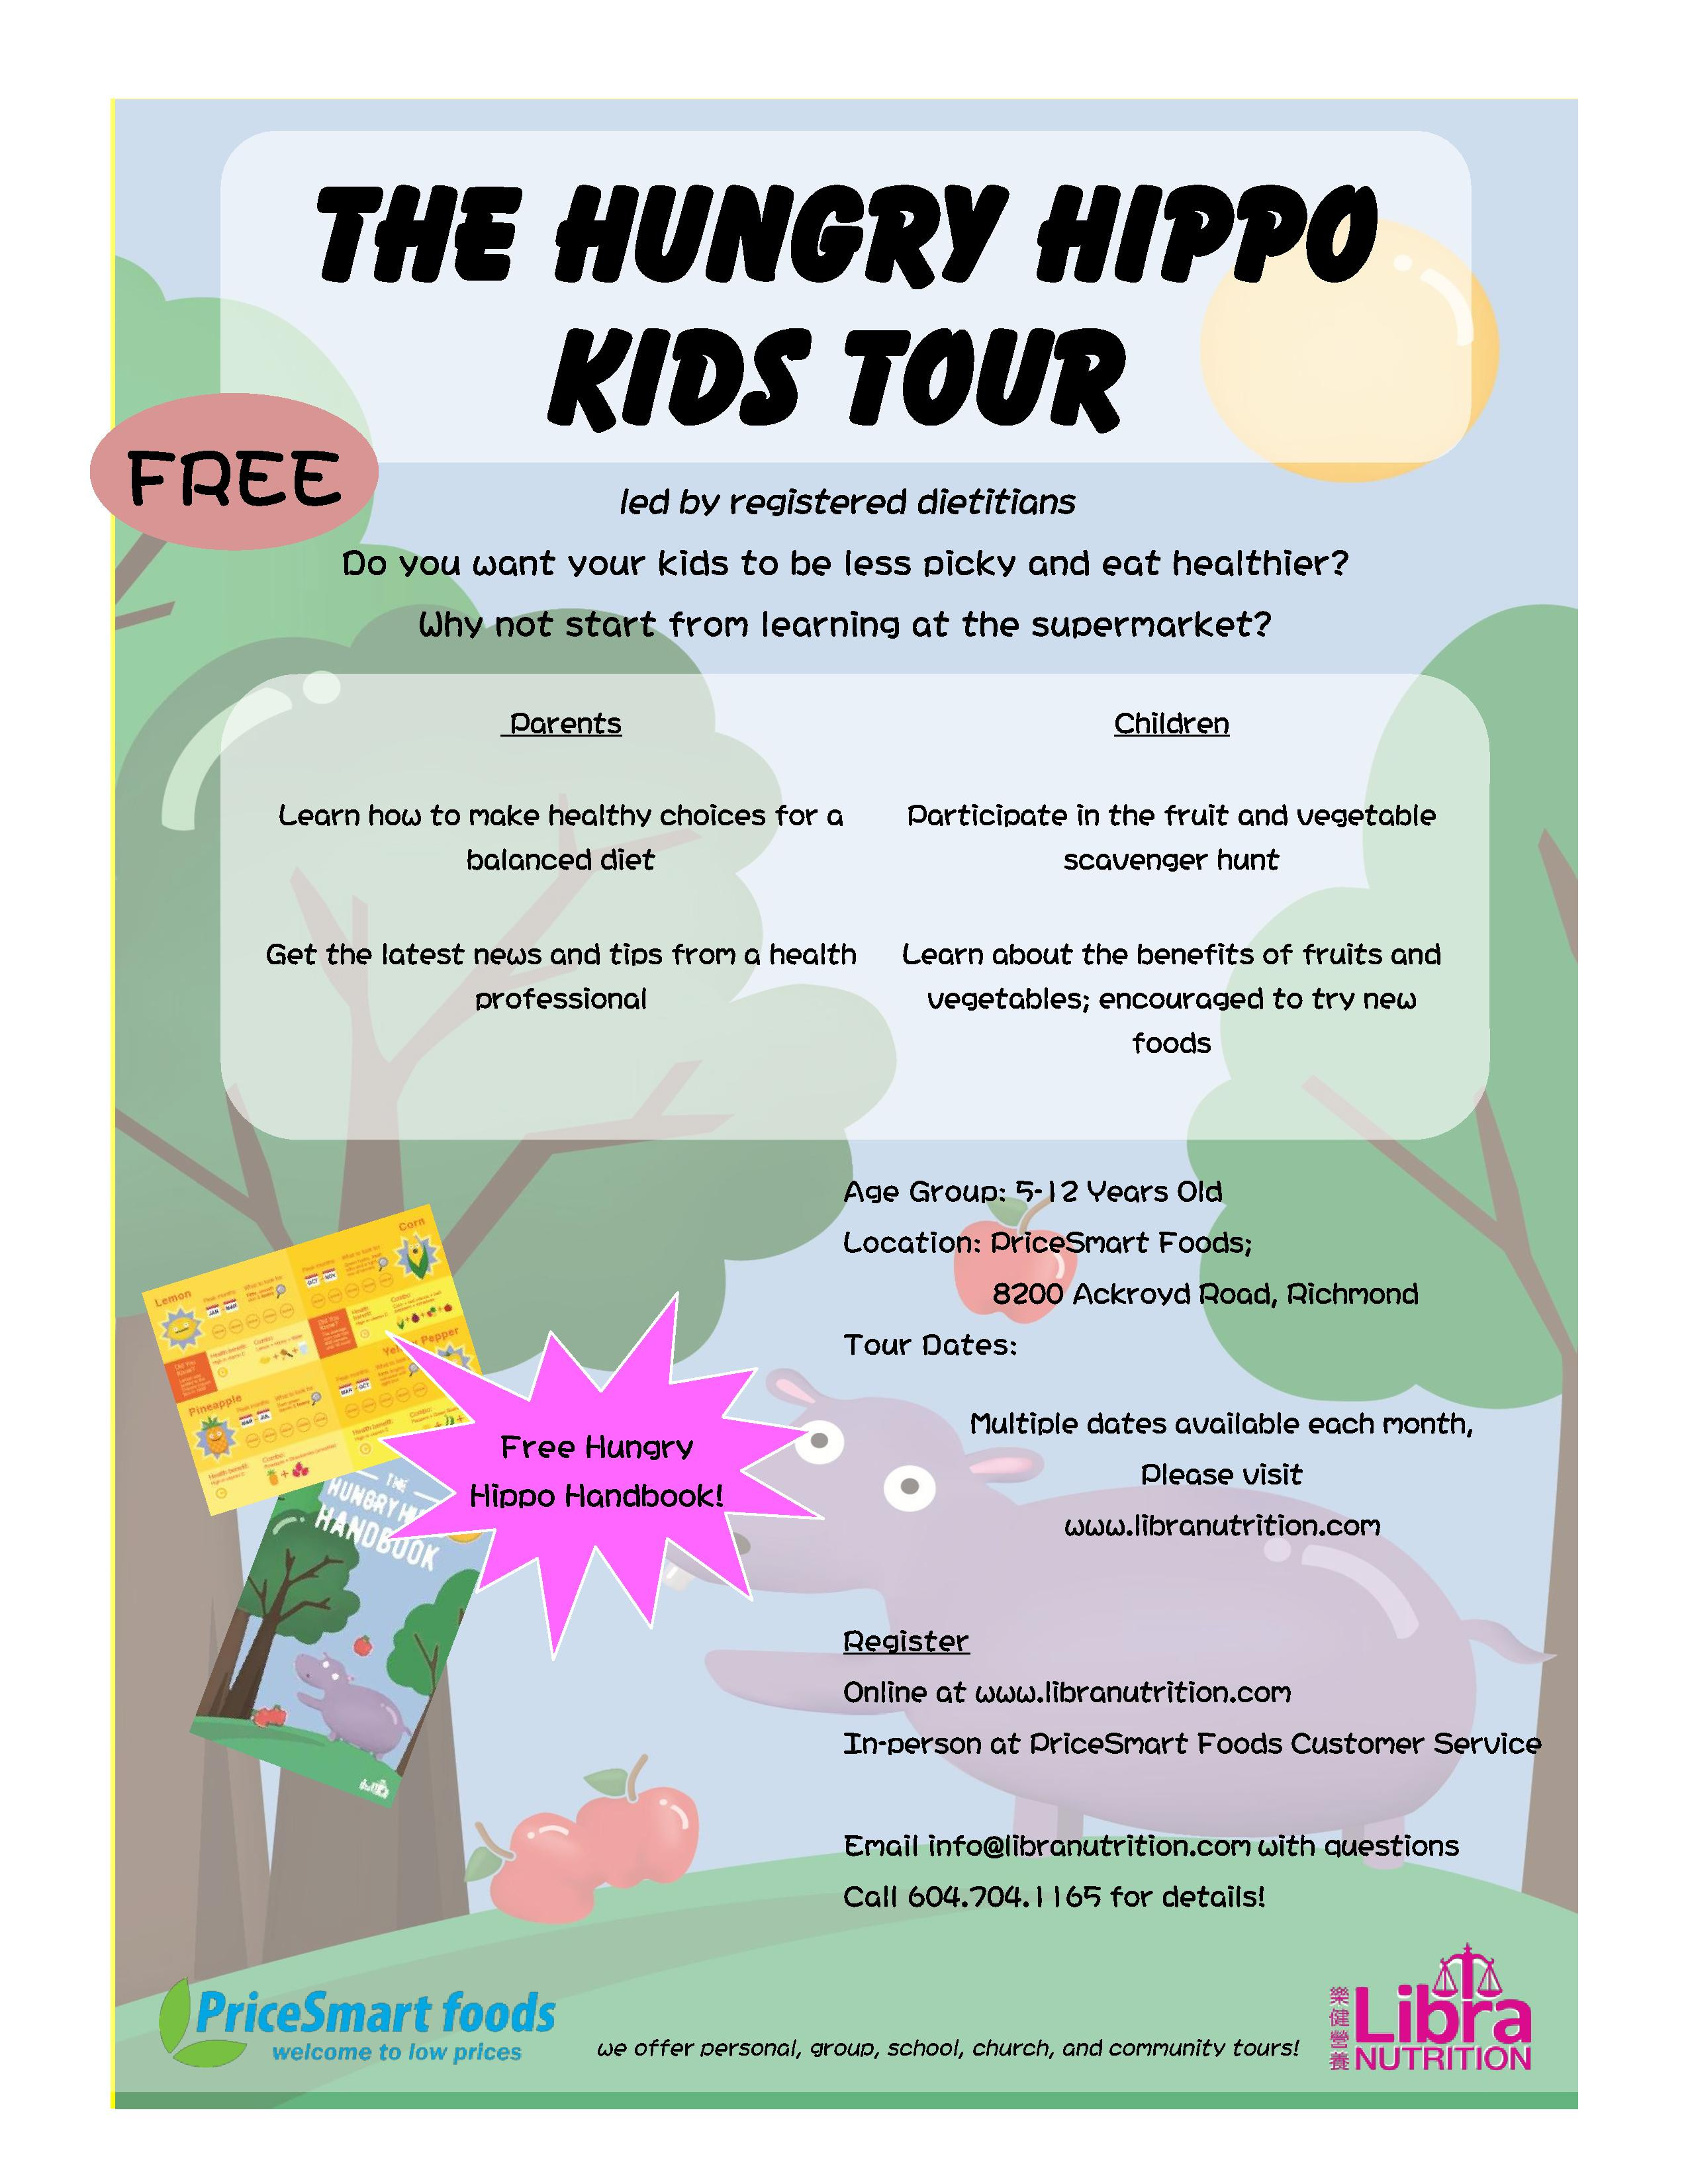 Hungry Hippo Kids Tour Flyer - English